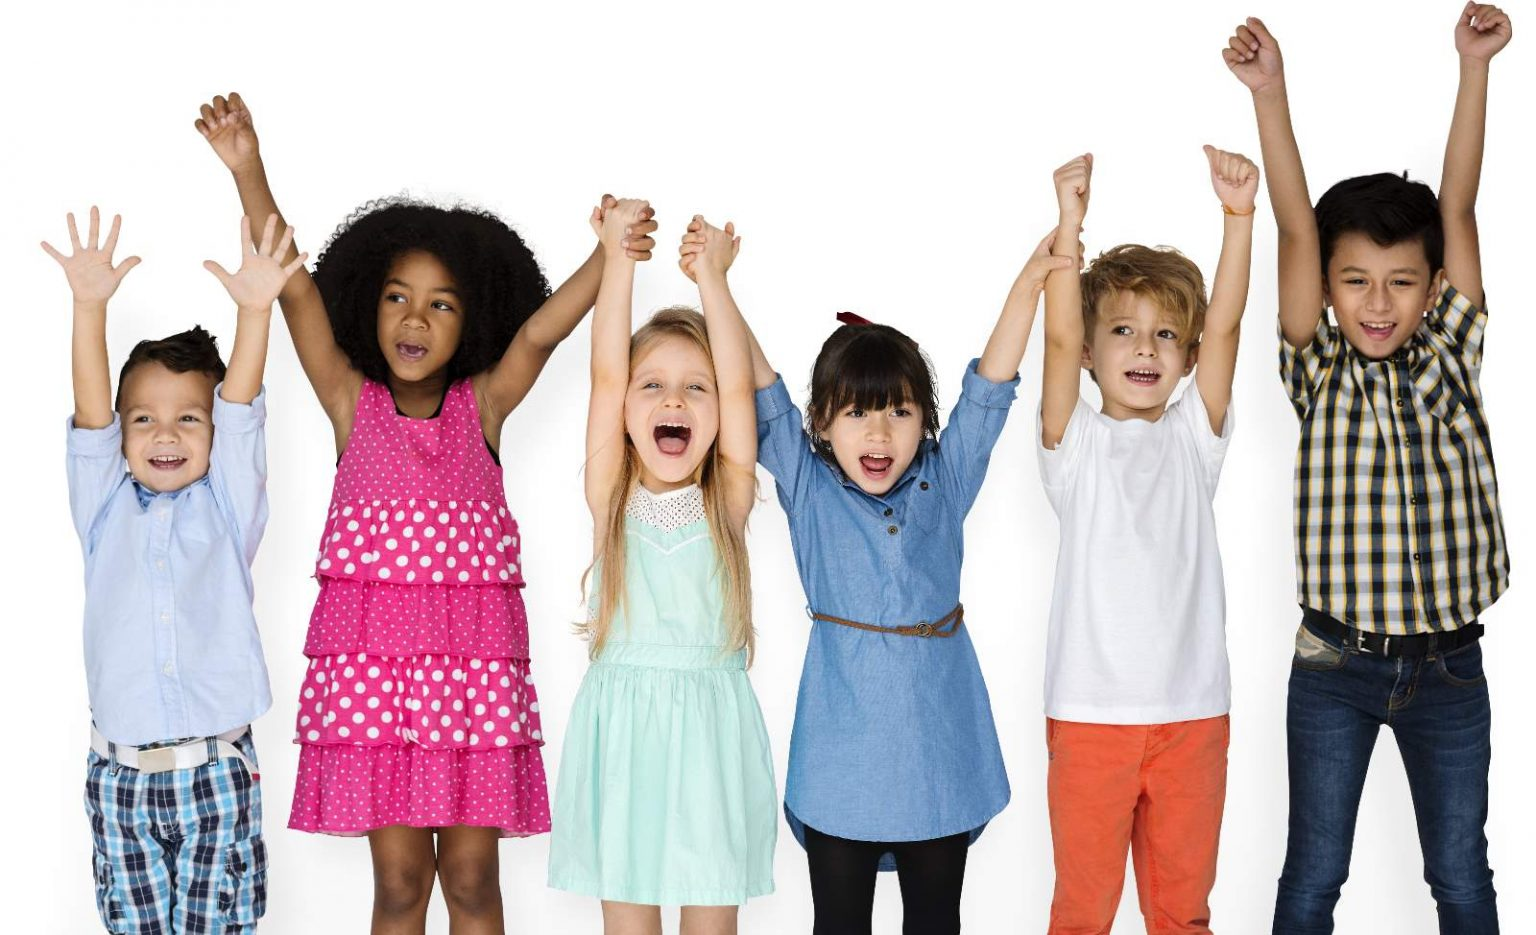 Kids Cheering at Party